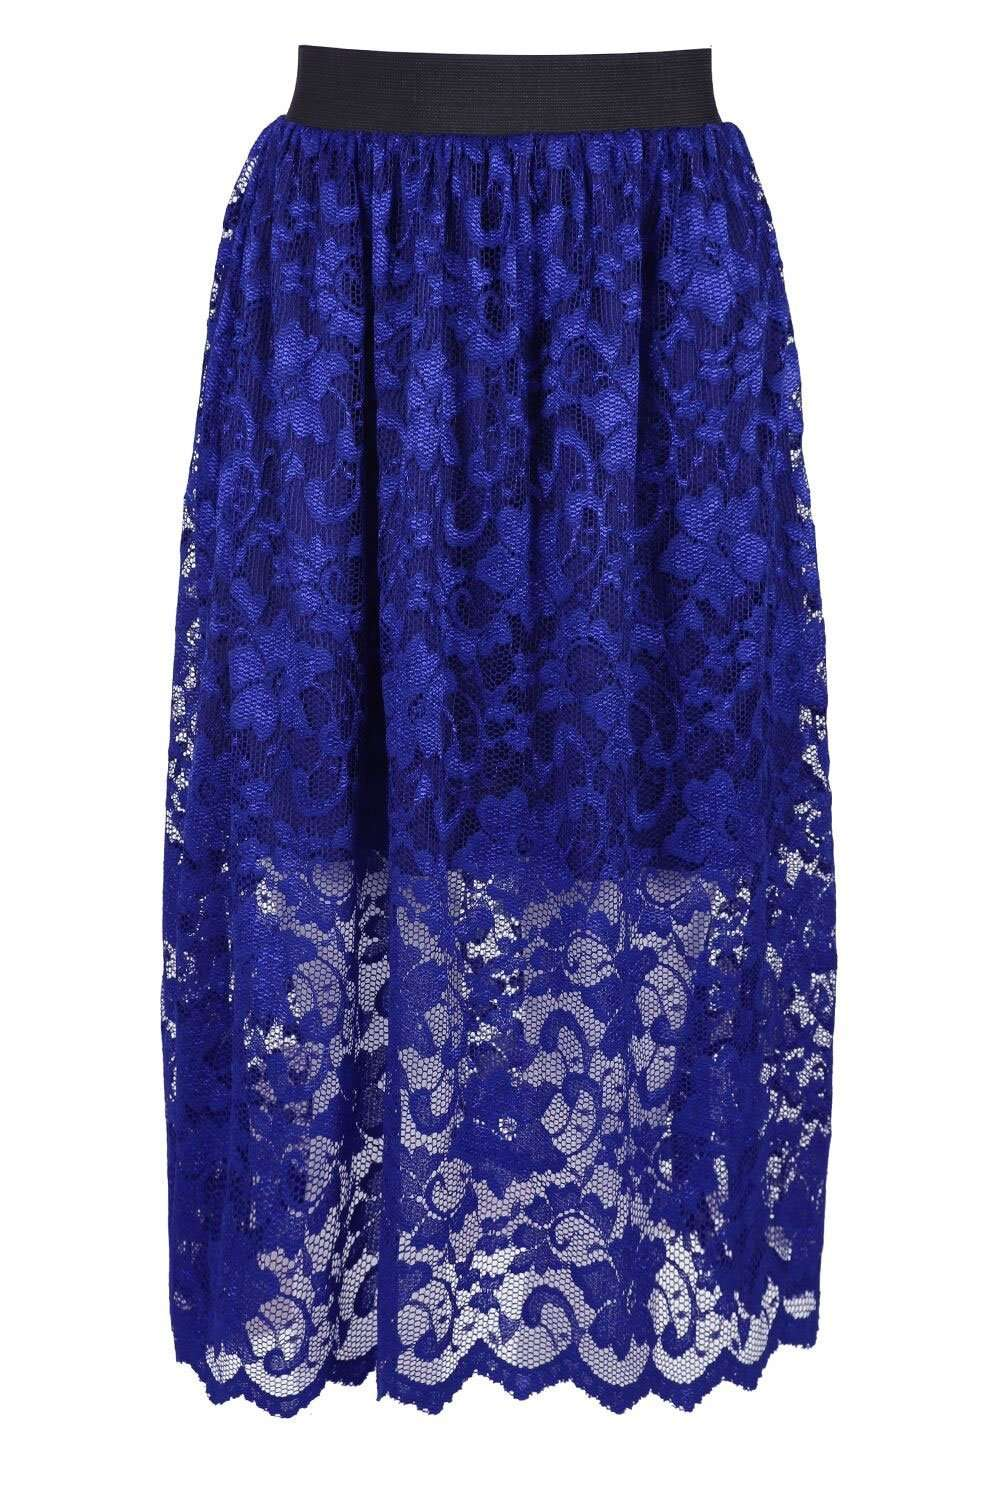 Allizia High Waist White Floral Lace Midi Skirt - bejealous-com